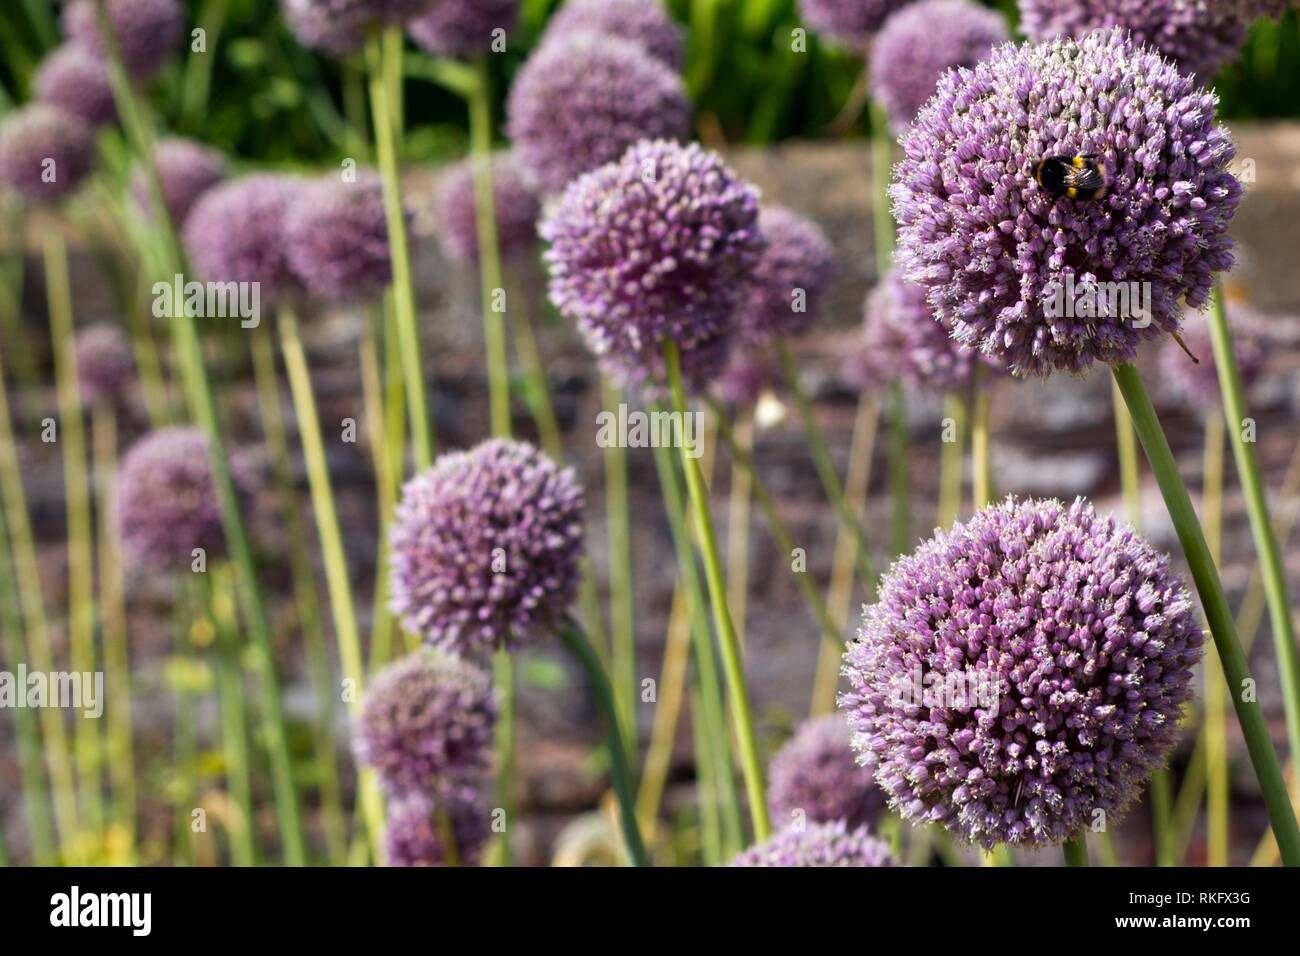 Shallow focus view of Elephant Garlic flowers, one with a bee. - Stock Image